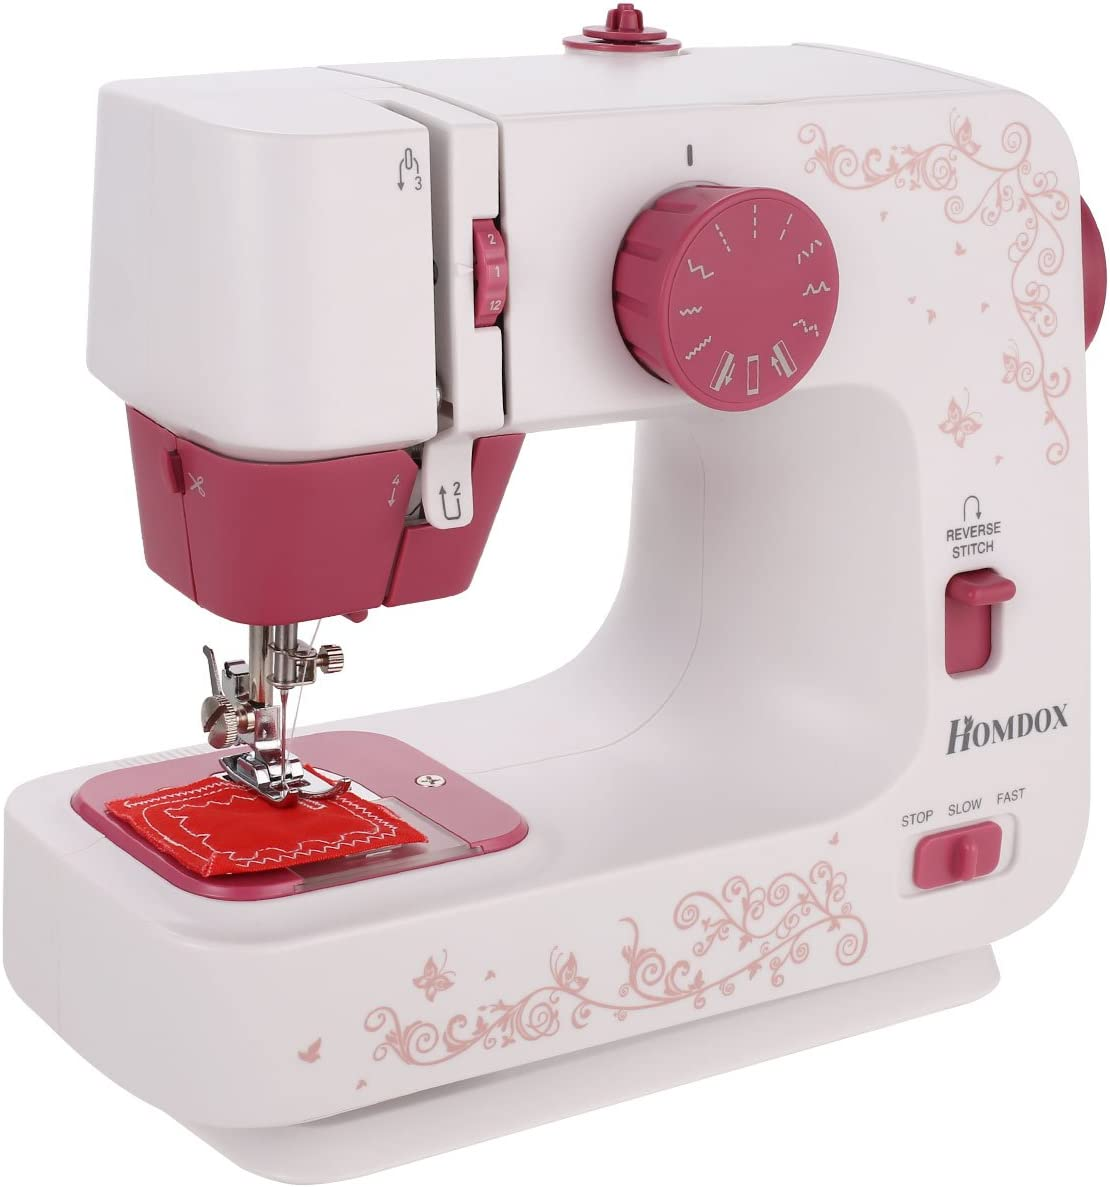 Top 10 Best Sewing Machine for Kids (2019 Reviews & Buying Guide) 5